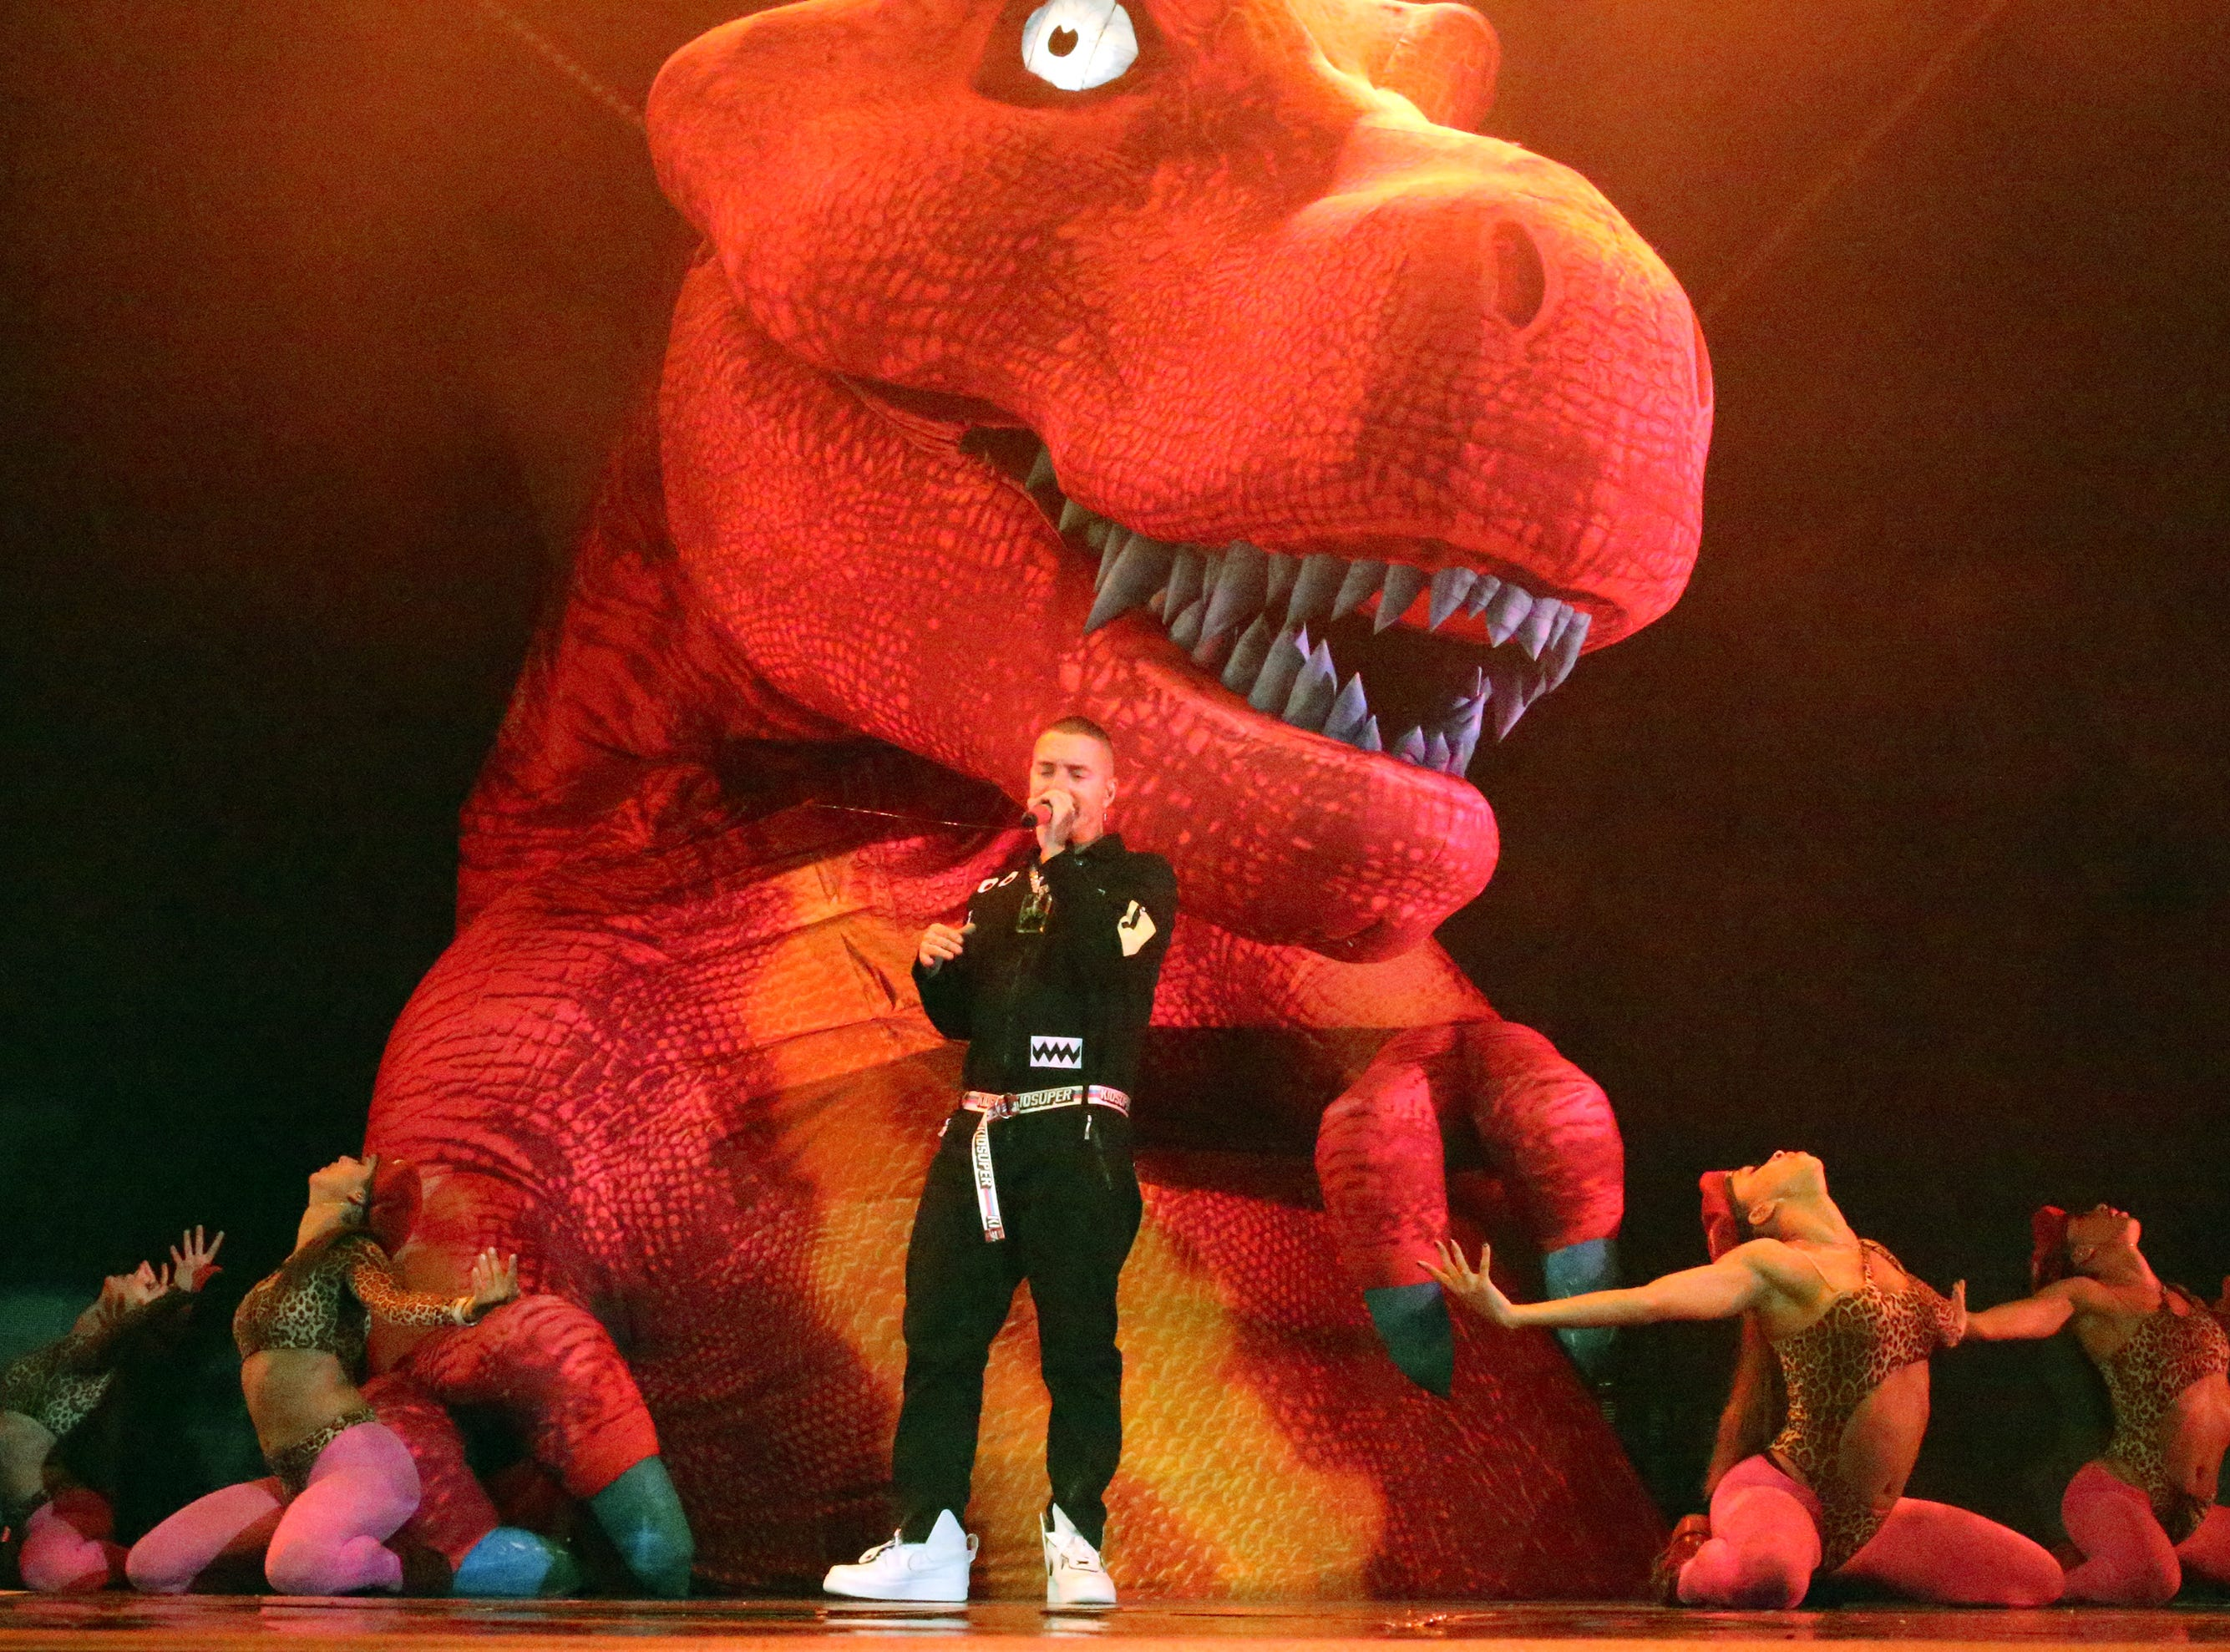 Reggaeton singer J Balvin is surrounded by dinosaurs and dancers on stage during his Sunday night show at the Don Haskins Center.